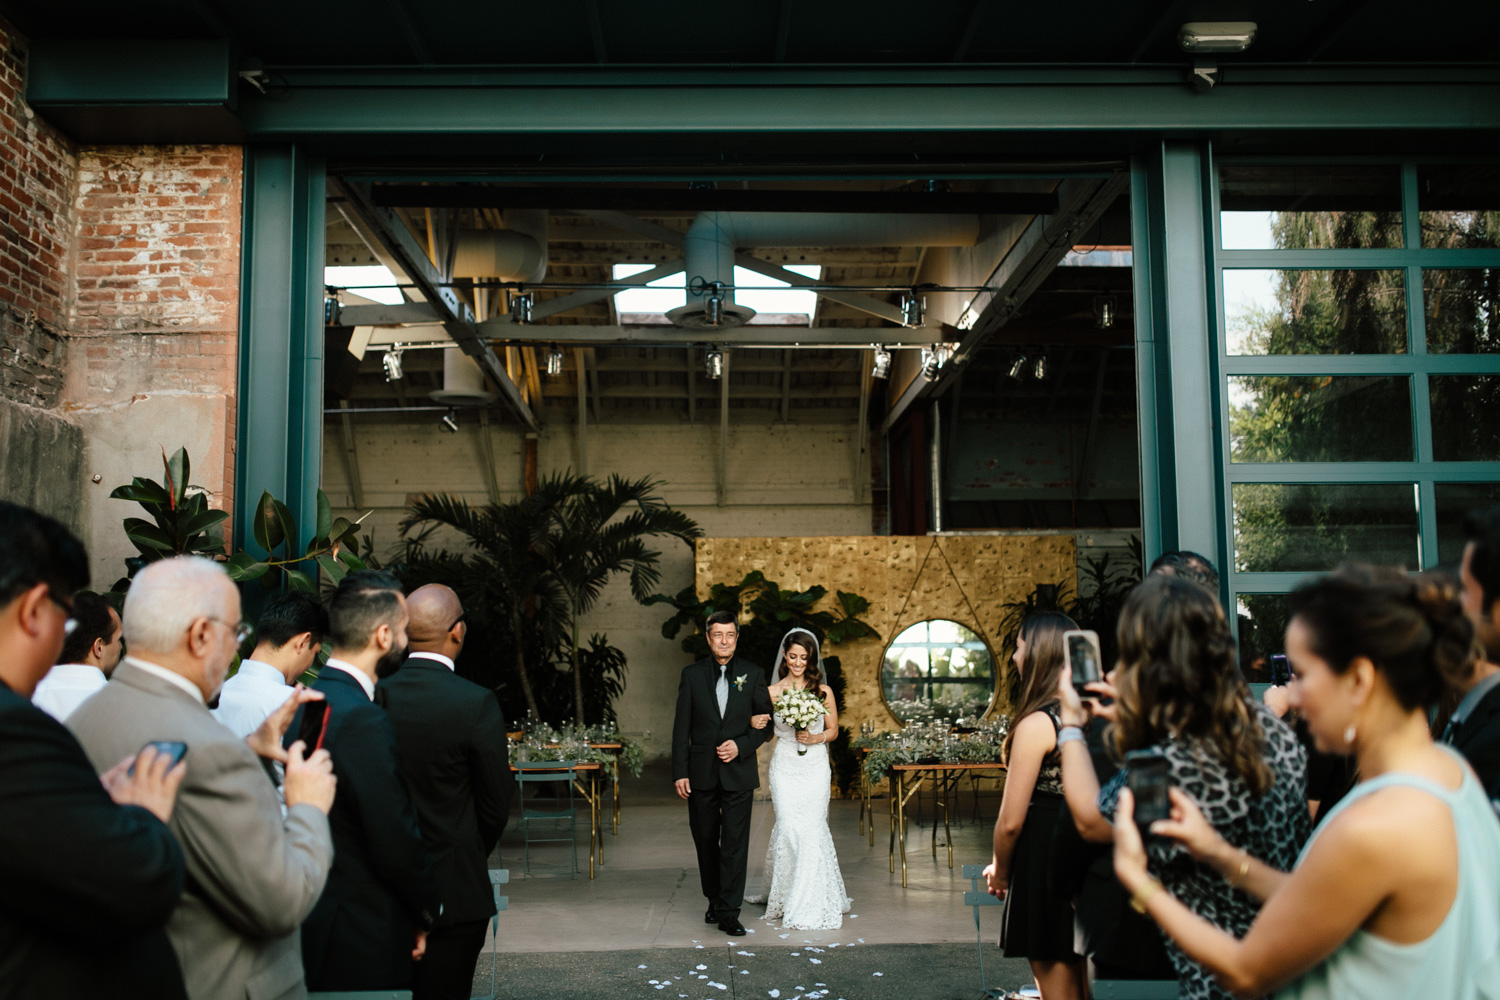 Los Angeles Wedding Photographer, Ace Hotel, Millwick Wedding - The Gathering Season x weareleoandkat 058.JPG